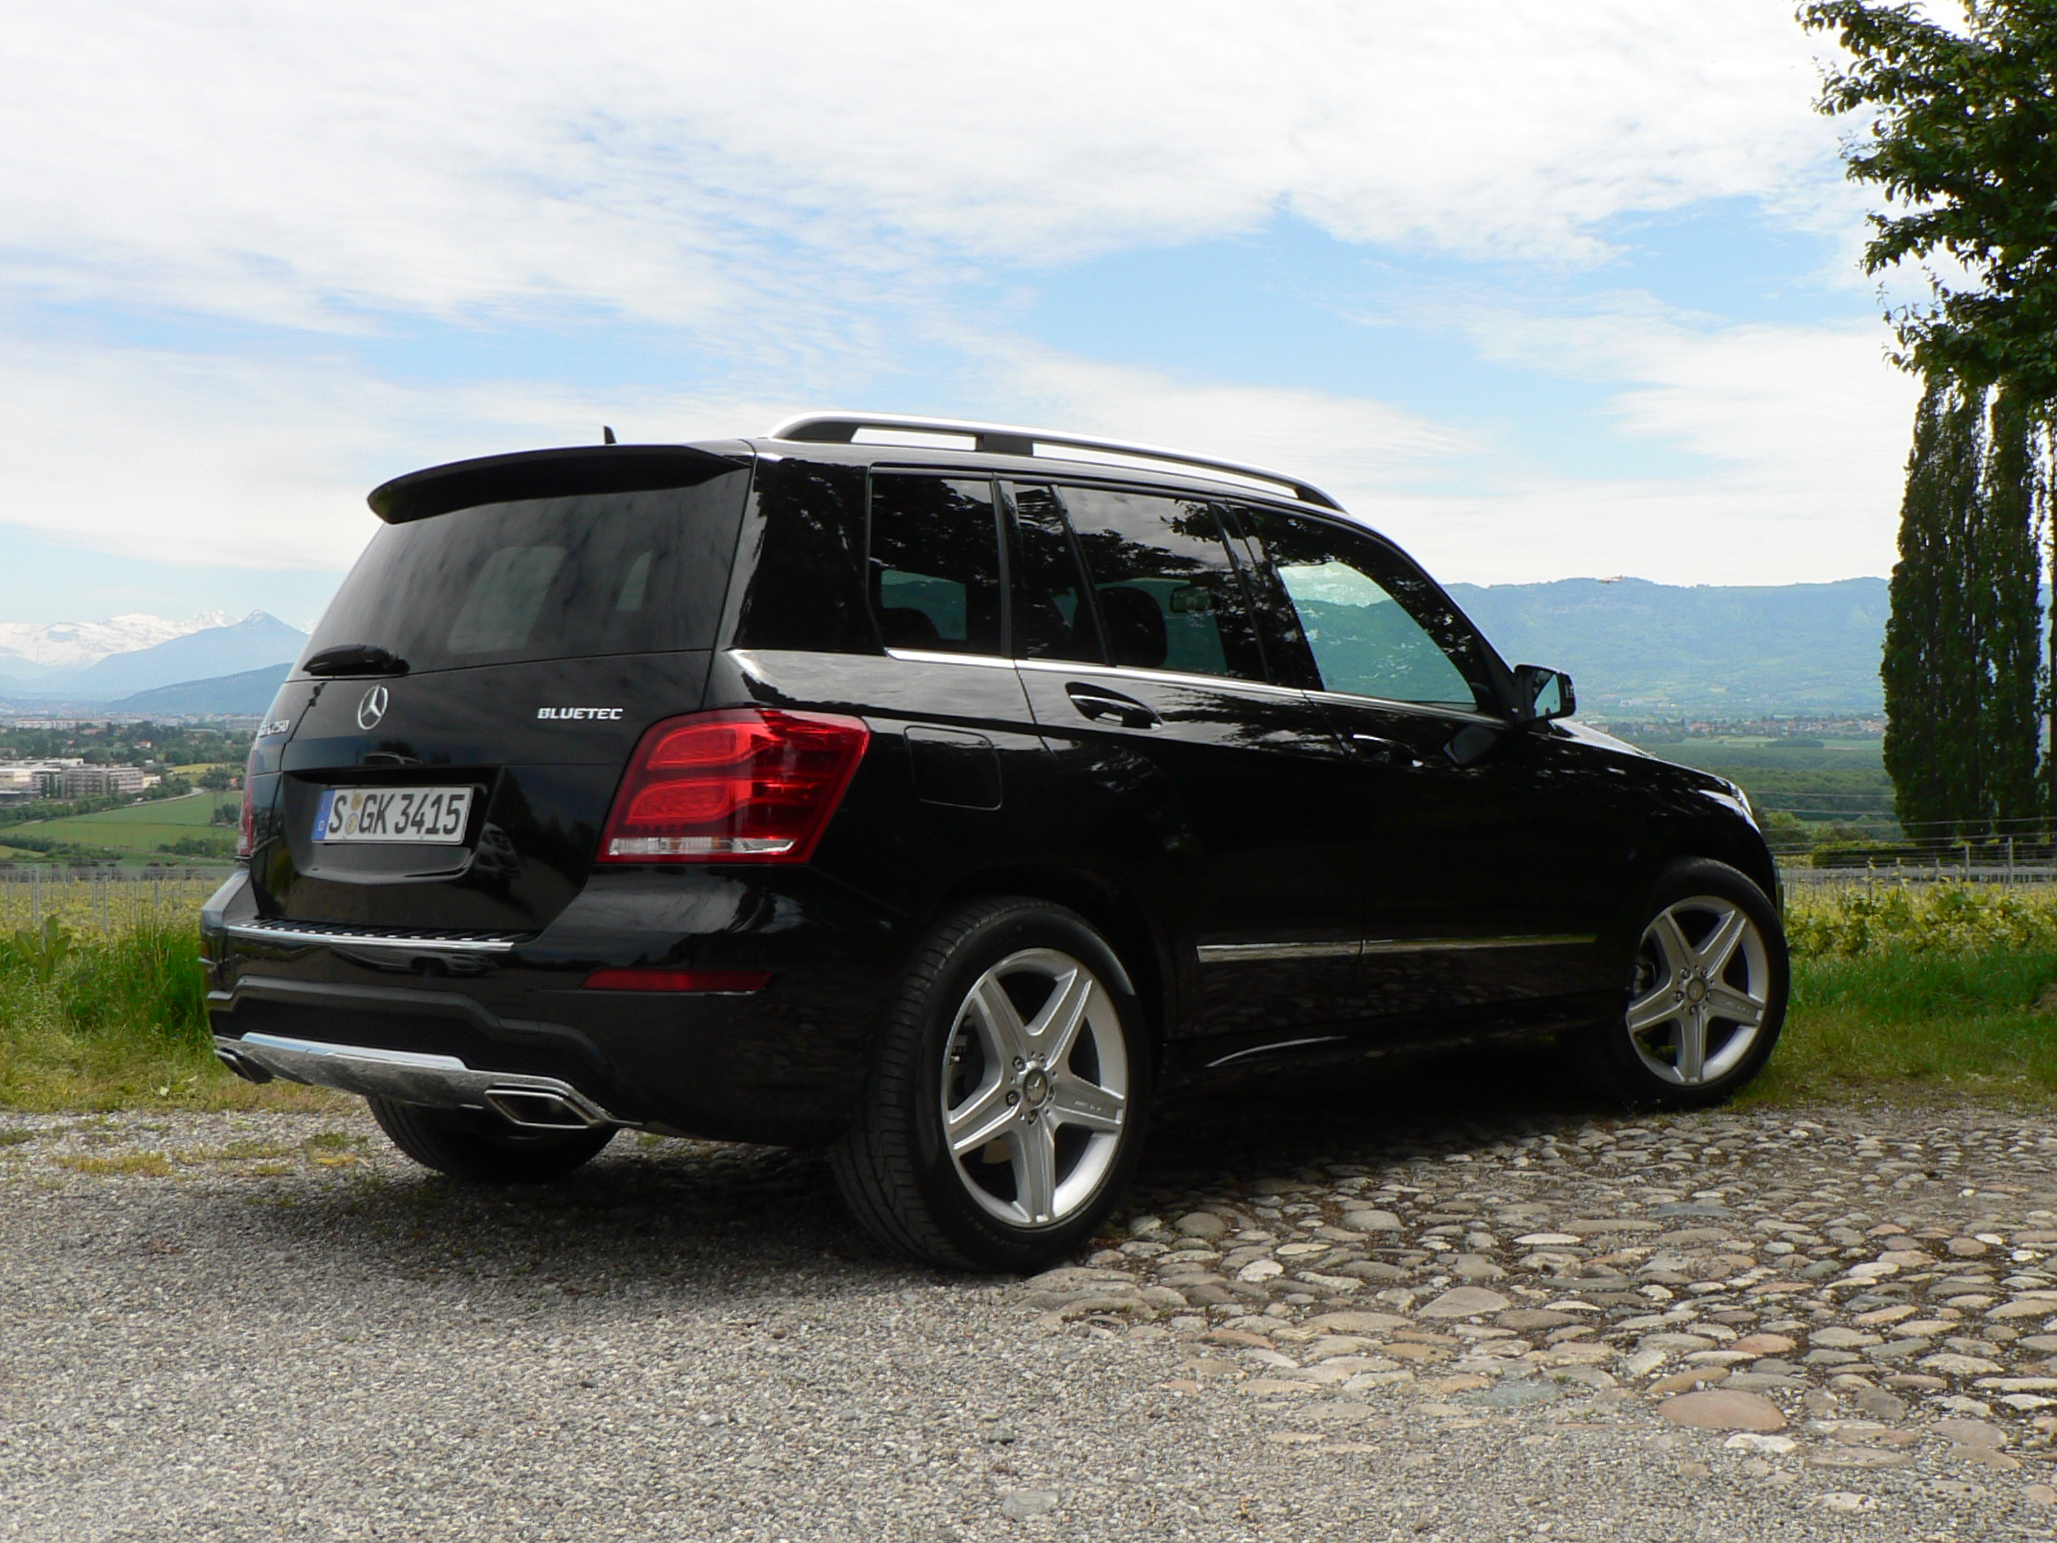 Mercedes benz 2016 glk 2017 2018 best cars reviews for 2016 mercedes benz glk350 price